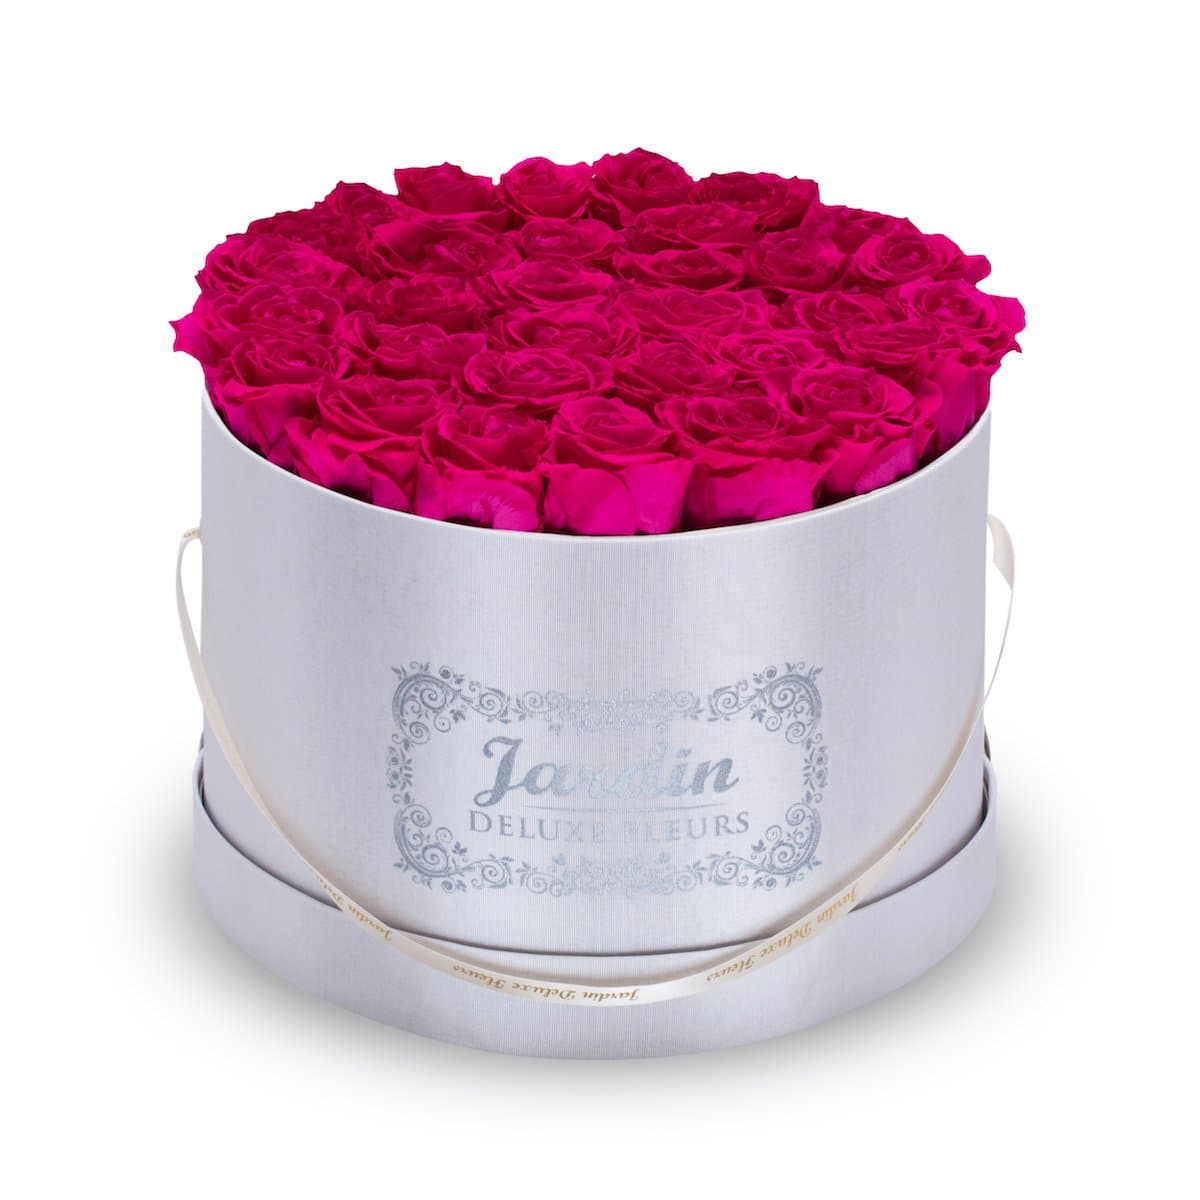 36 Pink Long Lasting Roses in White Hatbox